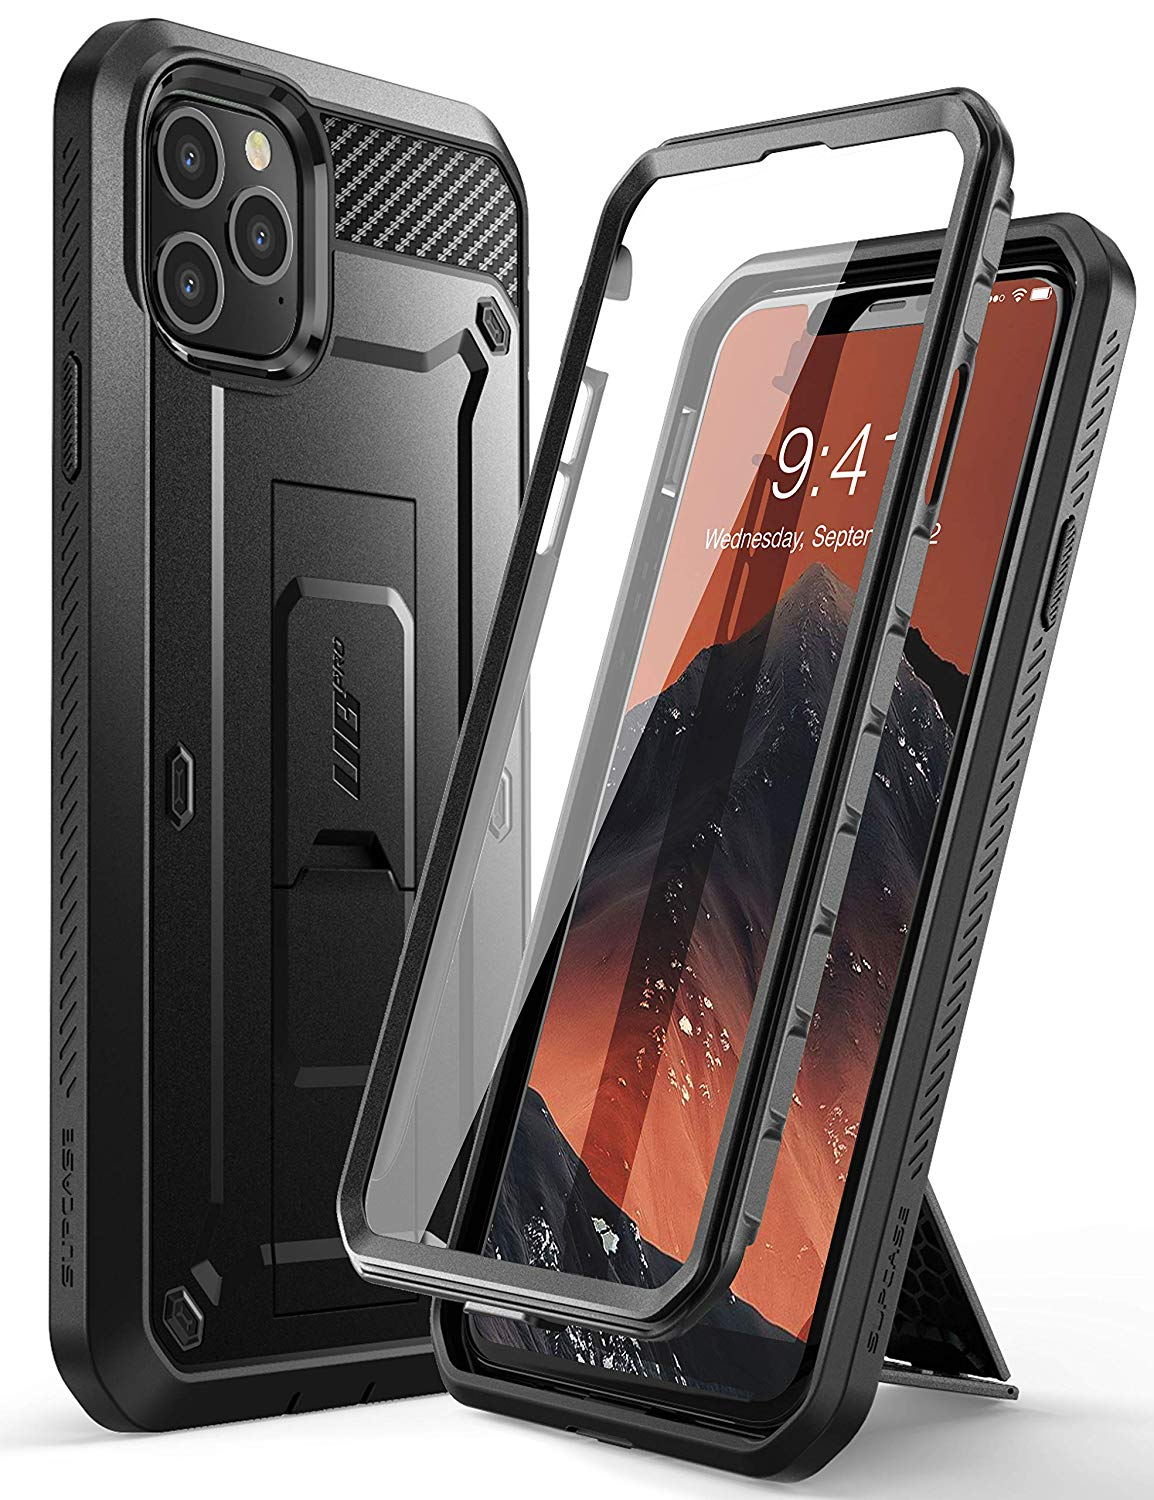 iPhone 11 Pro Max Armour Guard case